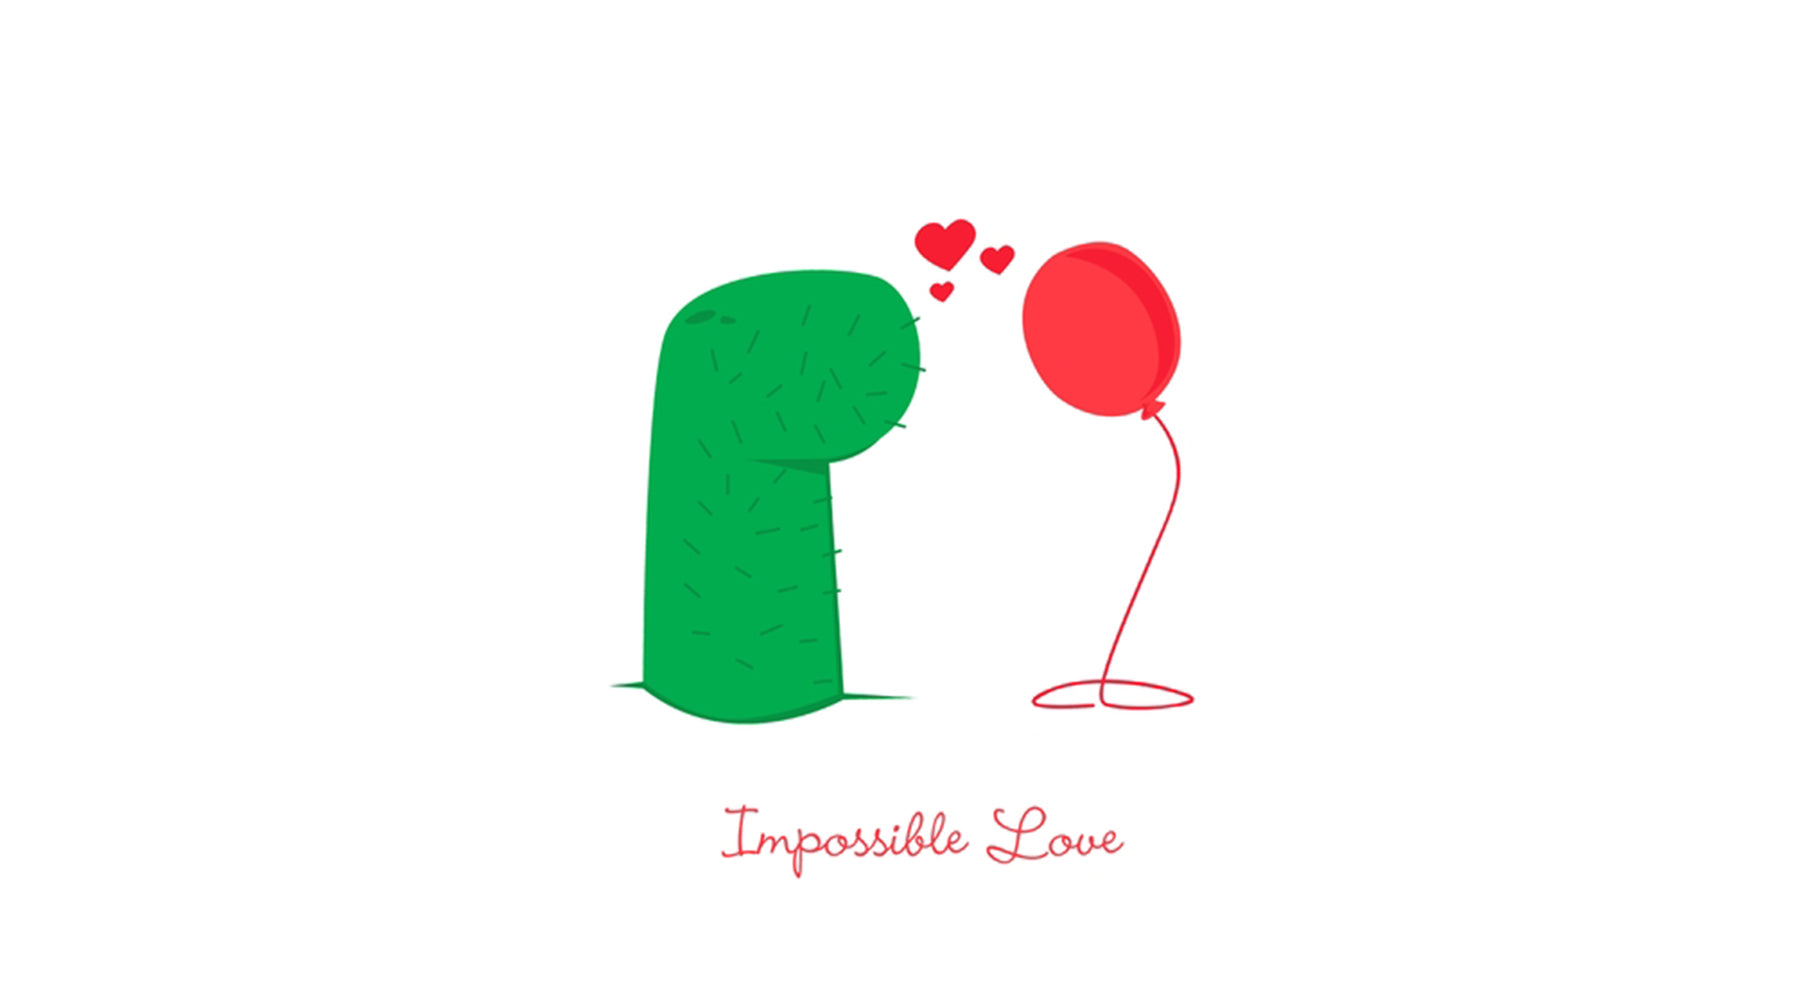 IMPOSSIBLE LOVE + WHAT TO DO WITH IT